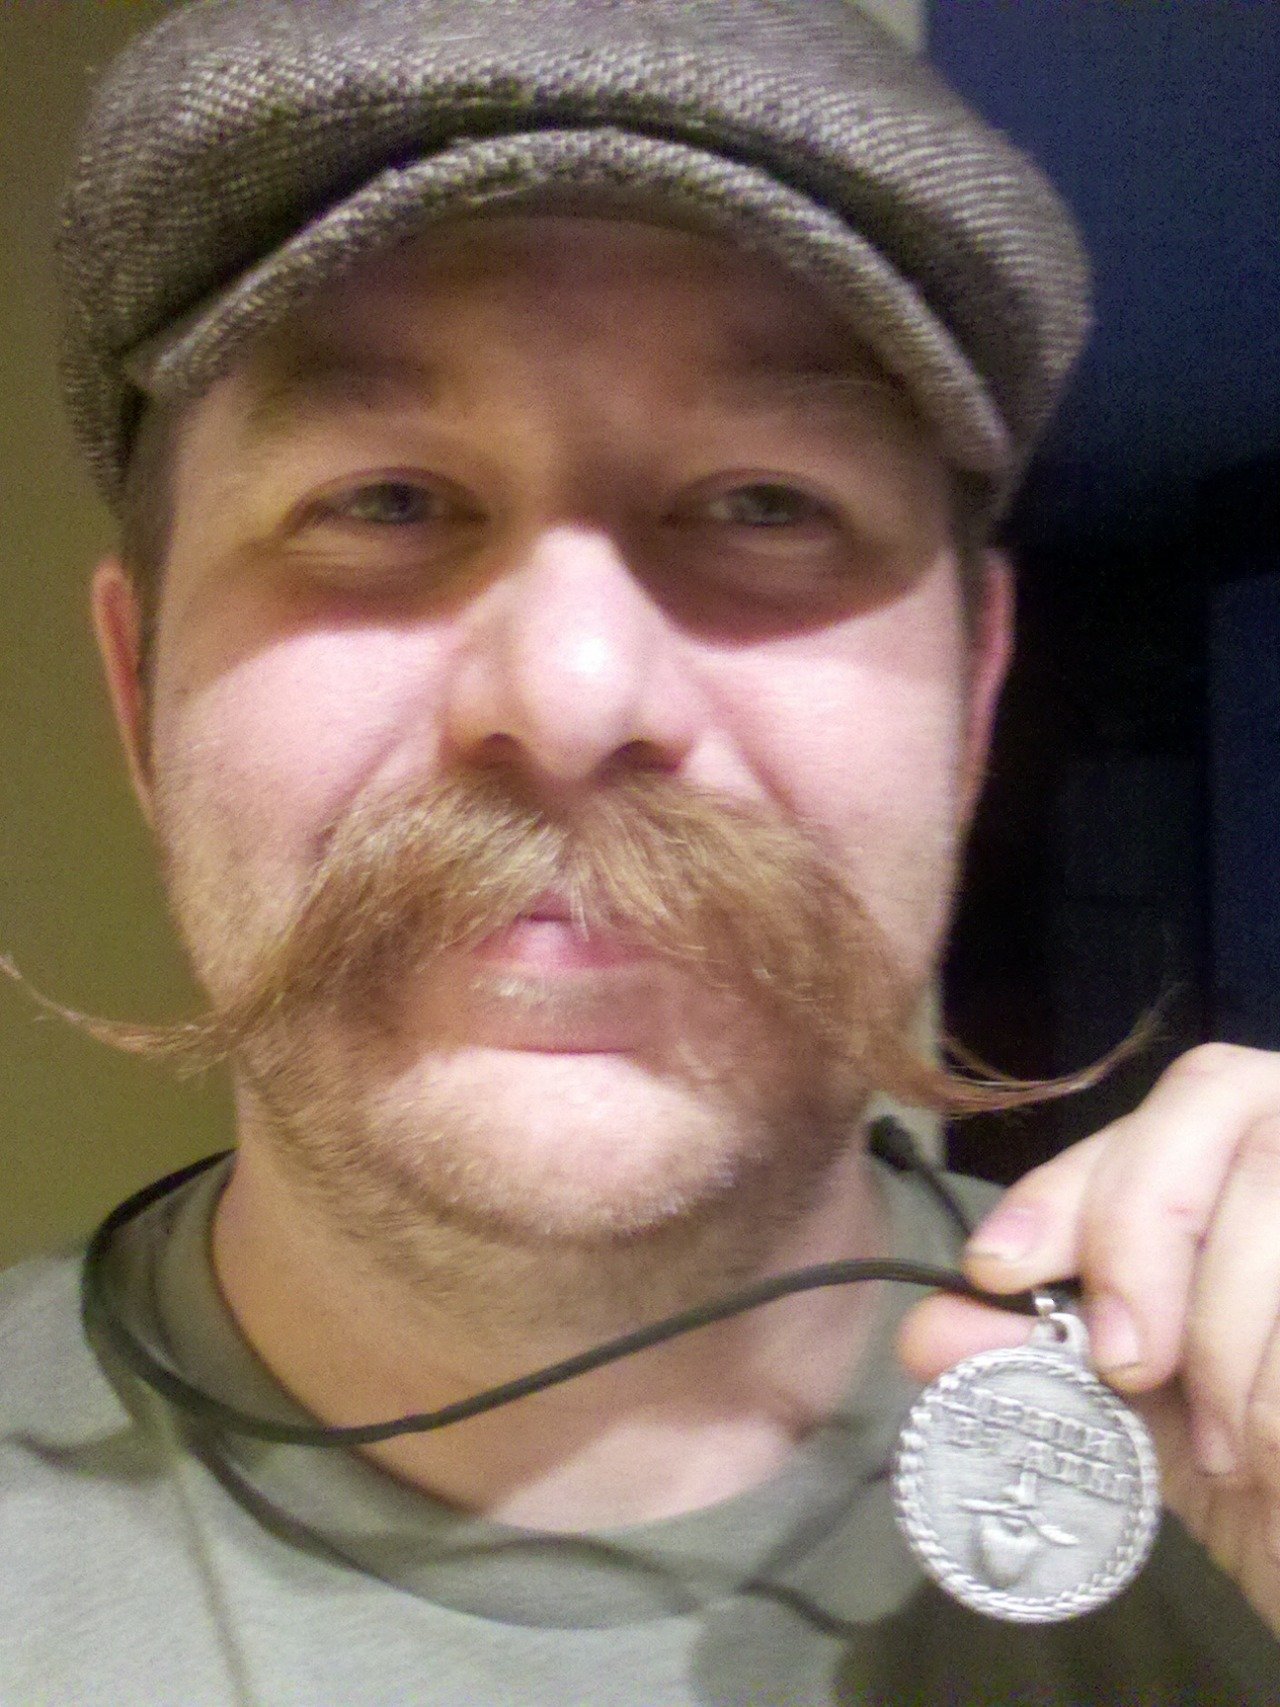 Dave Freeland with his kickass moustache and Beard Token necklace. Get your own Beard Token at http://beardtoken.com